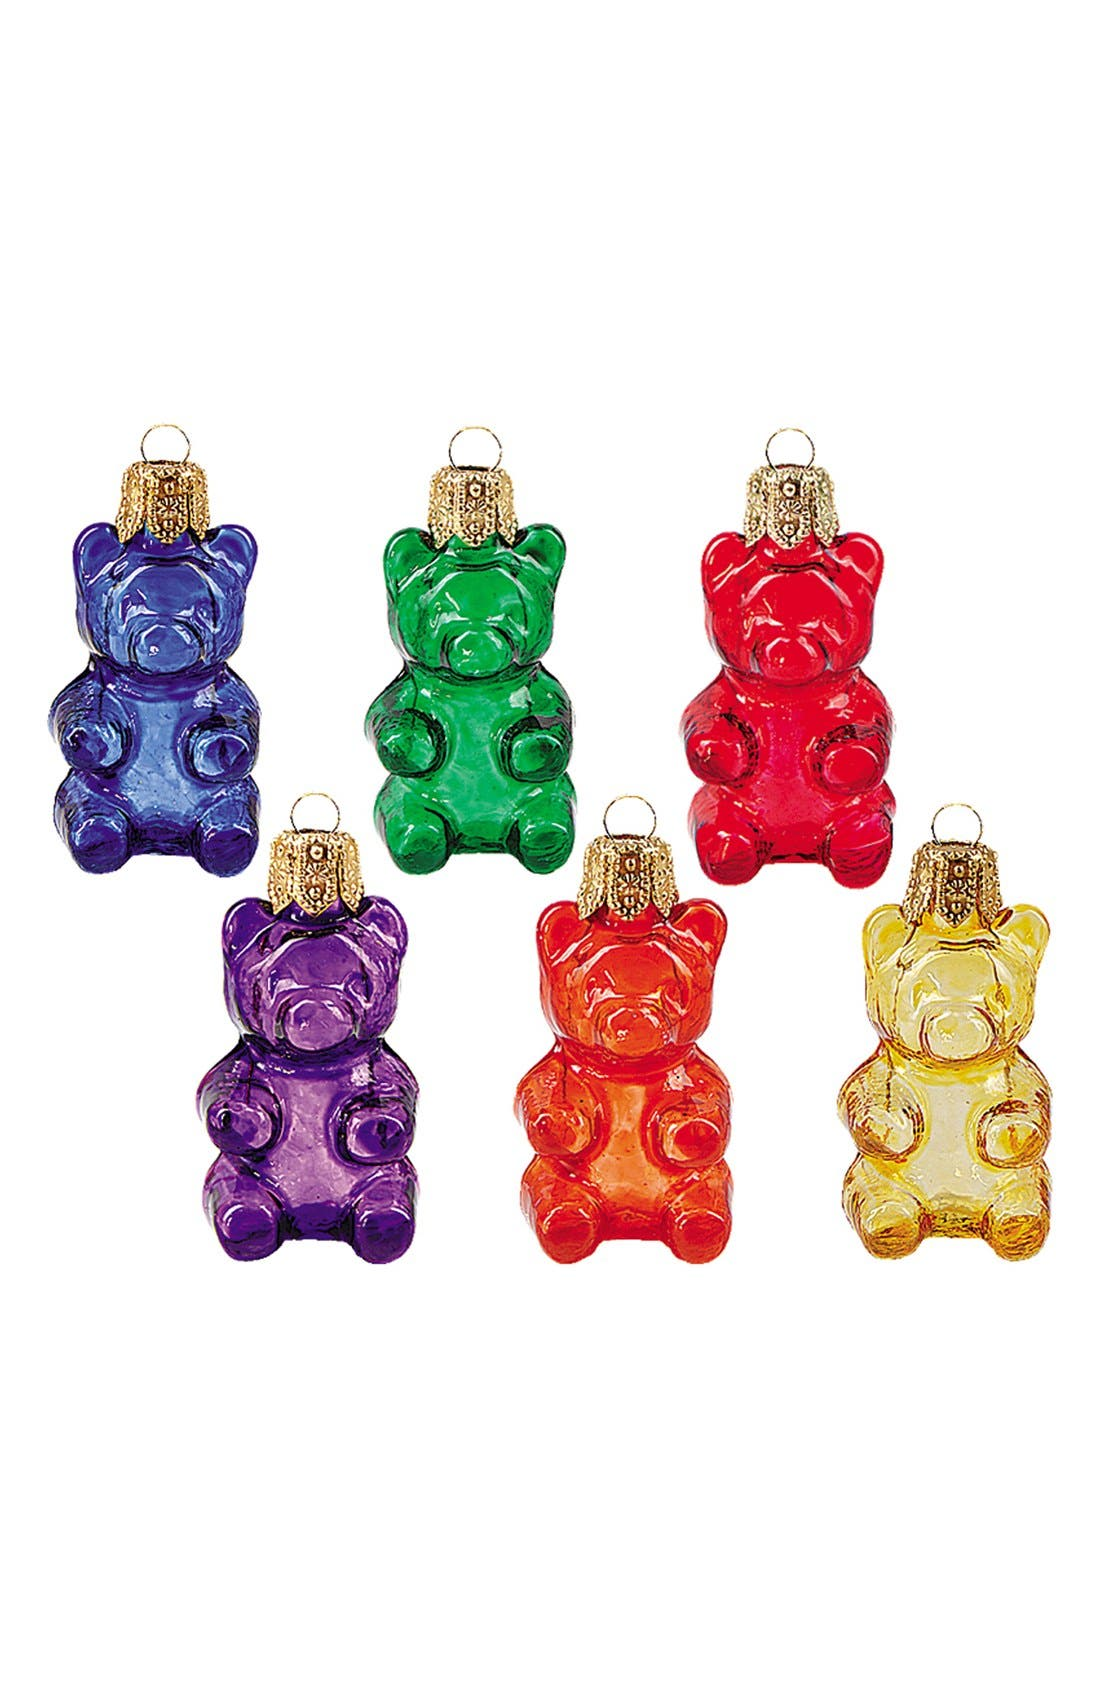 Alternate Image 1 Selected - Nordstrom at Home 'Gummy Bears' Handblown Glass Ornaments (Set of 6)